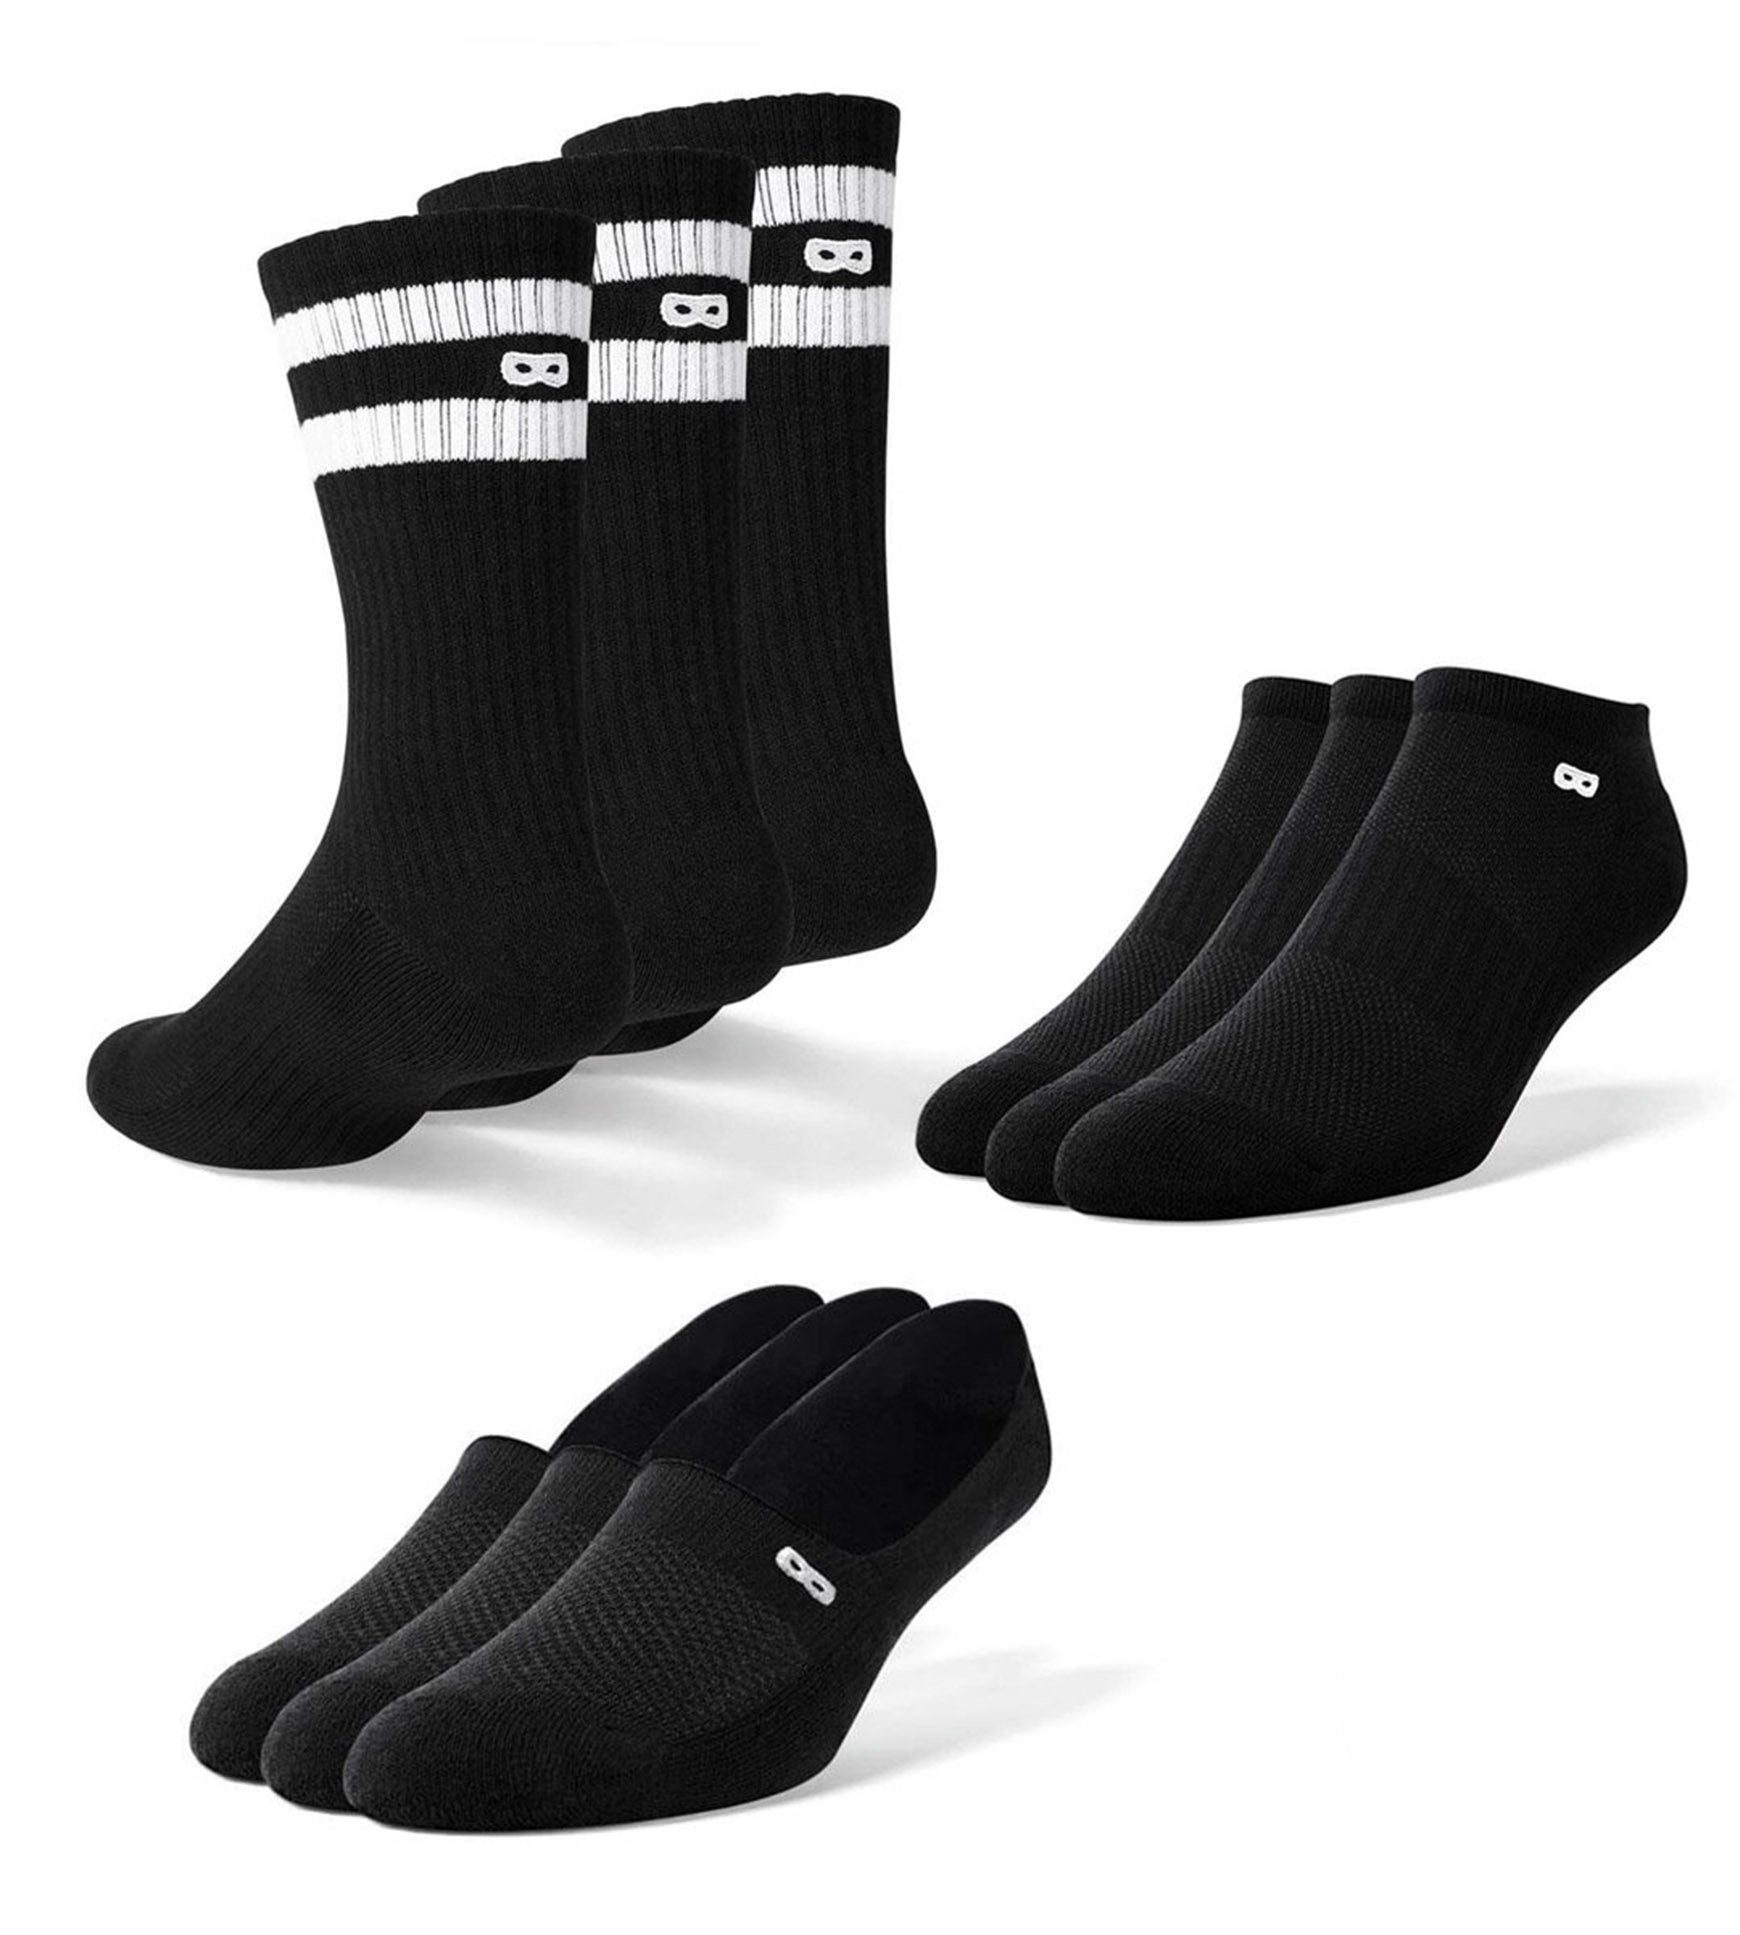 Women's Mega Blackout Socks 9 Pack